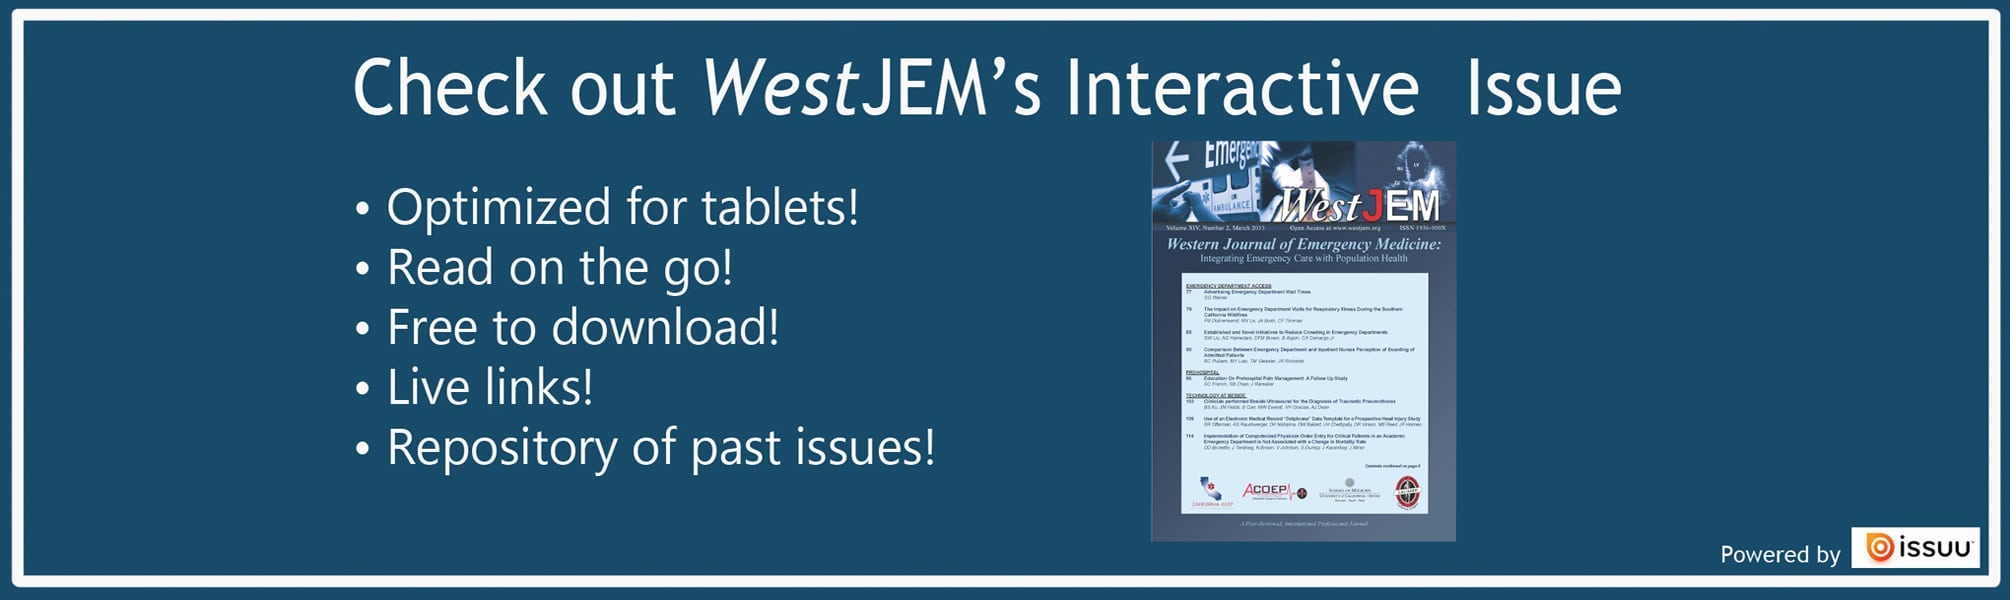 interactive banner for westejmcom